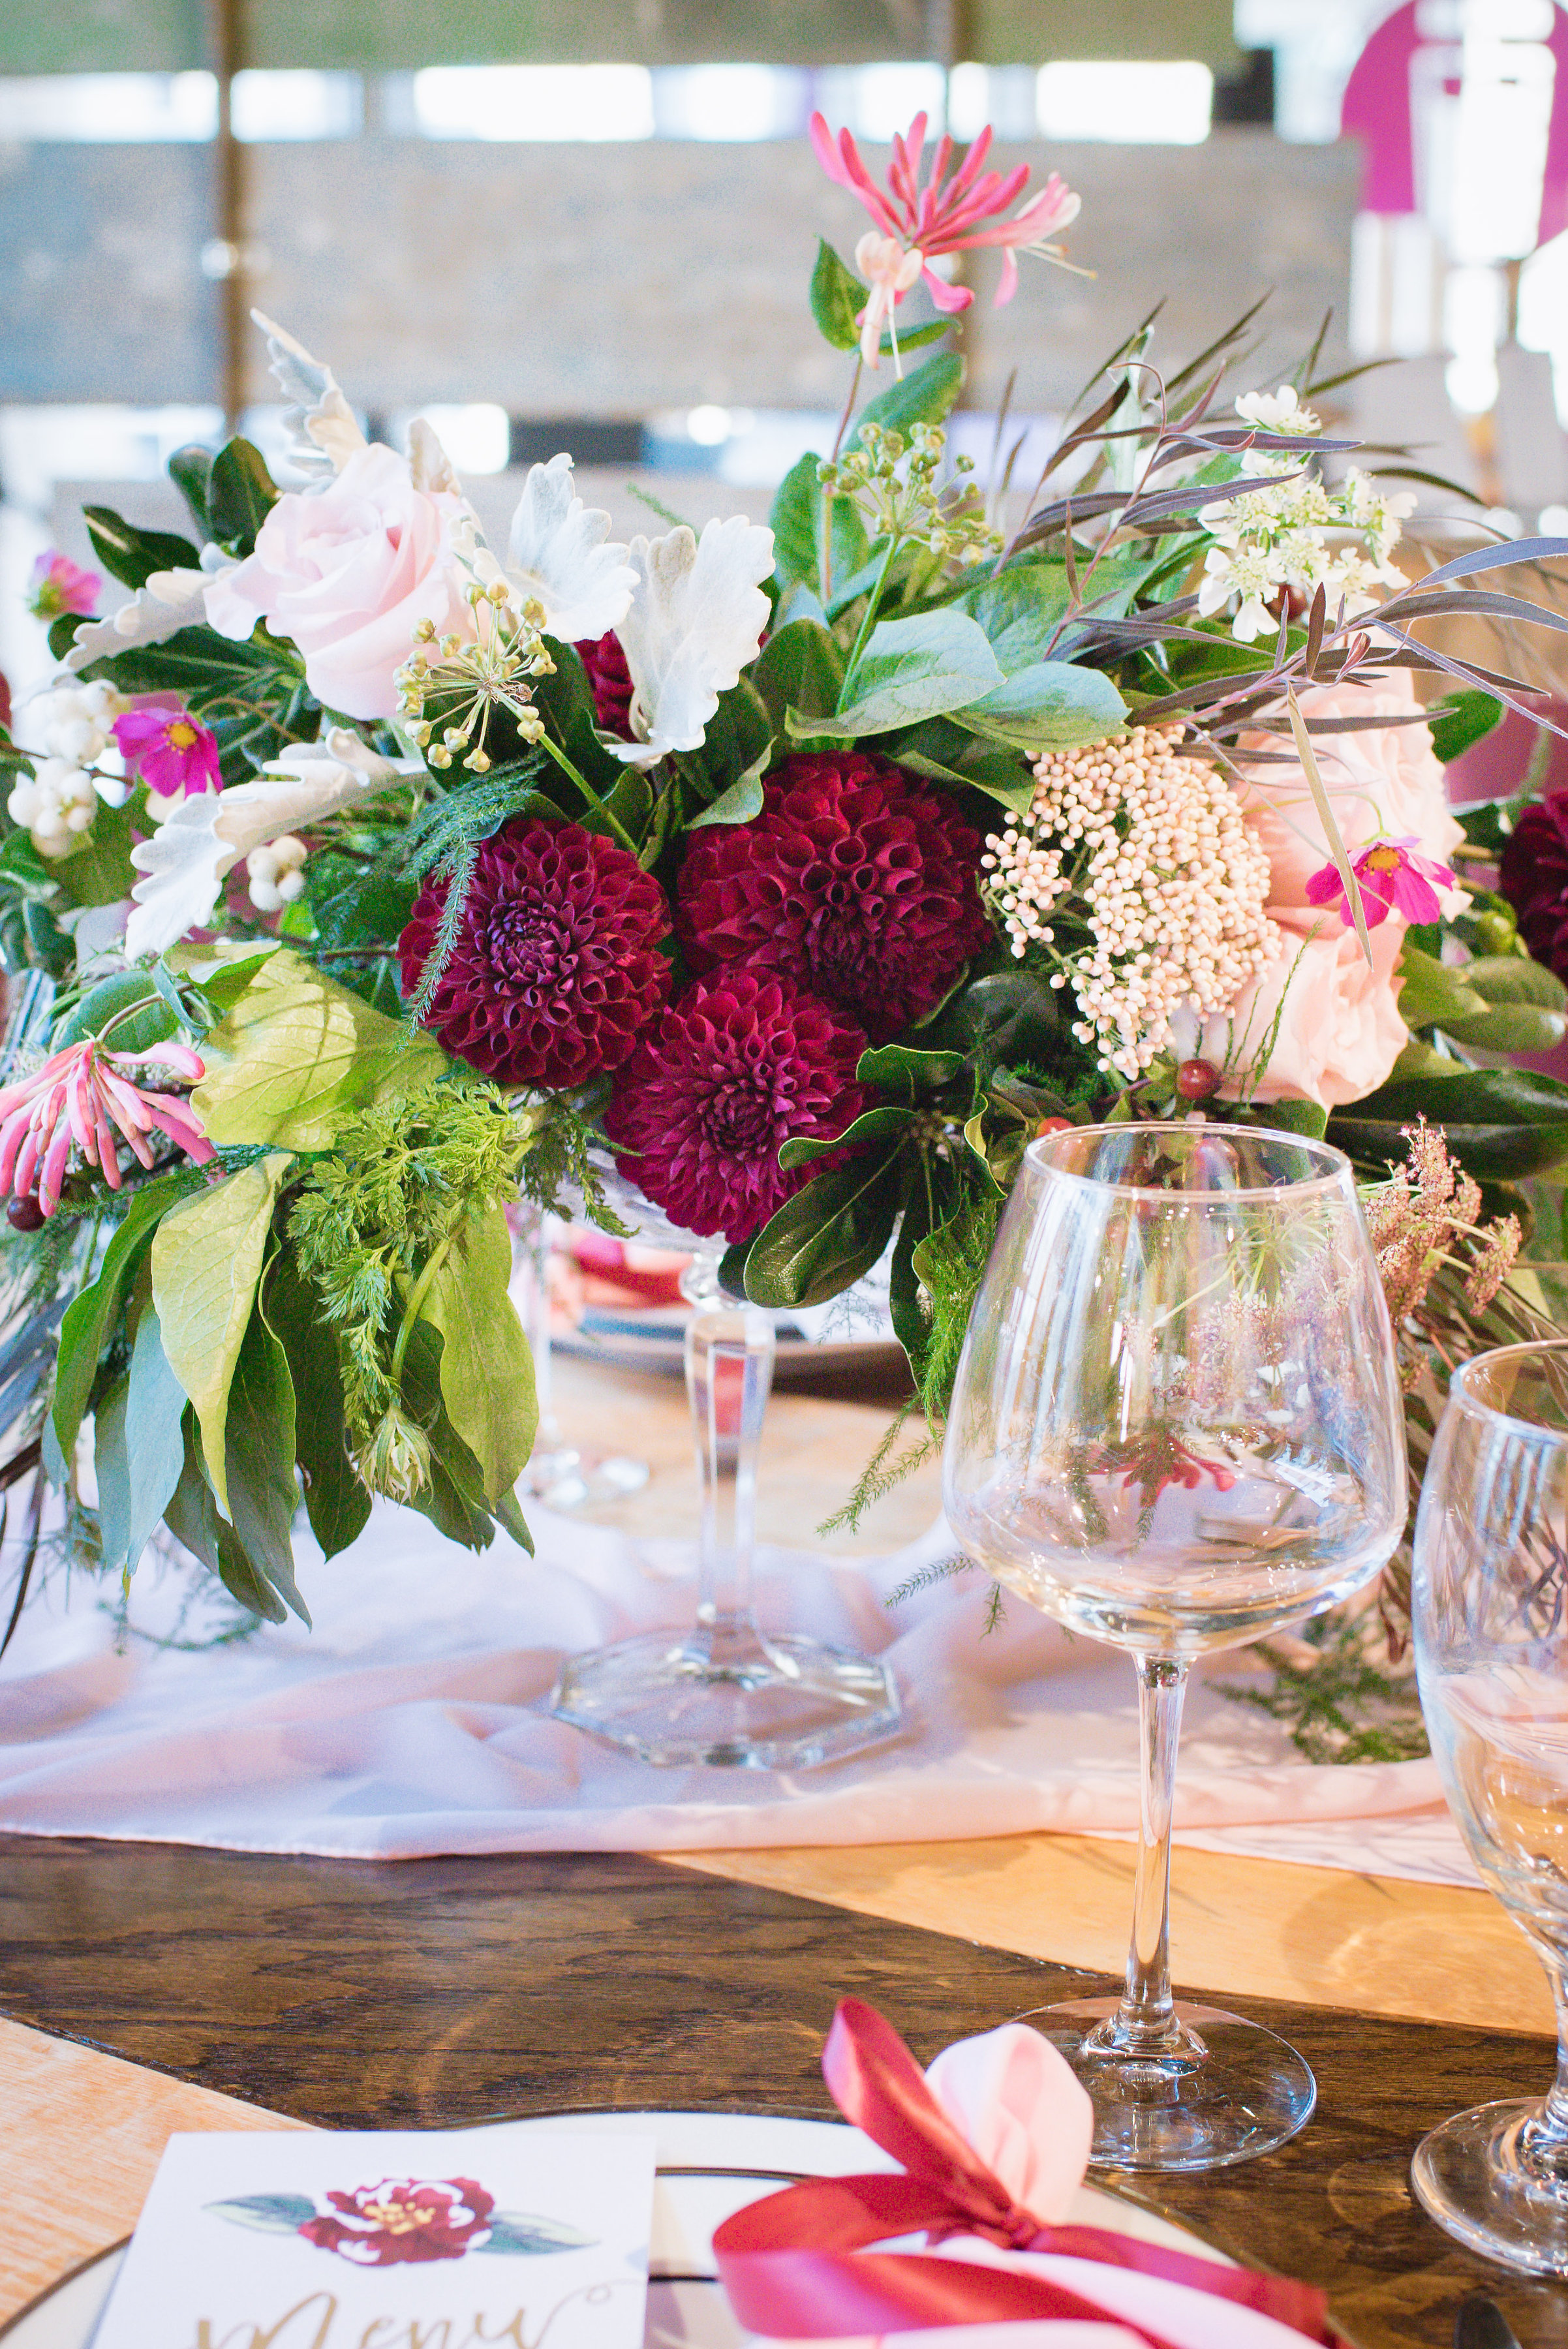 Blush & Burgundy Wedding Ideas Perfect for a Wine Bar Soiree